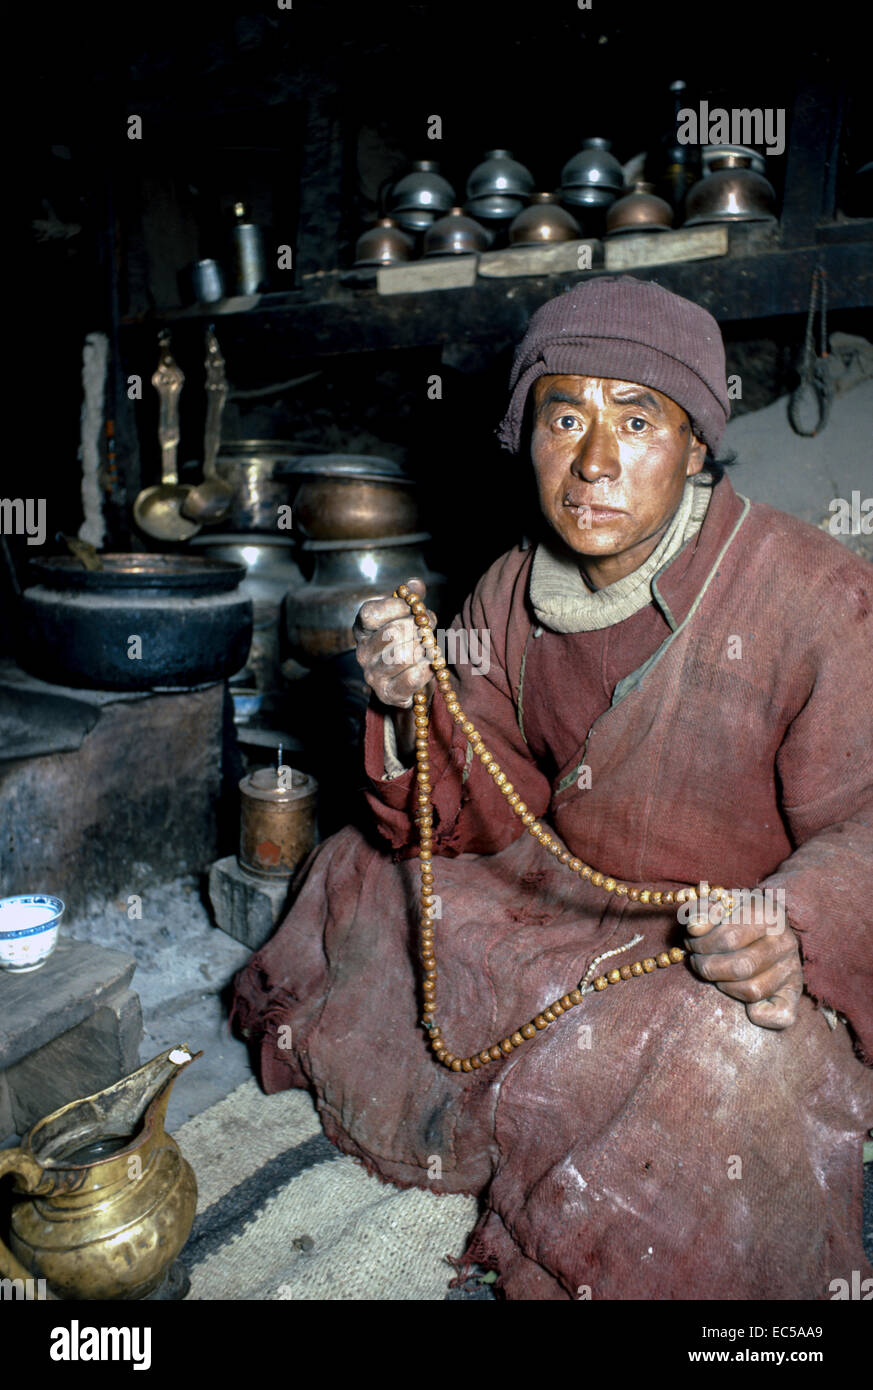 Tibet. Shaman/soothsayer sitting holding prayer beads. He is the lord Lonpo of Wanla.. - Stock Image